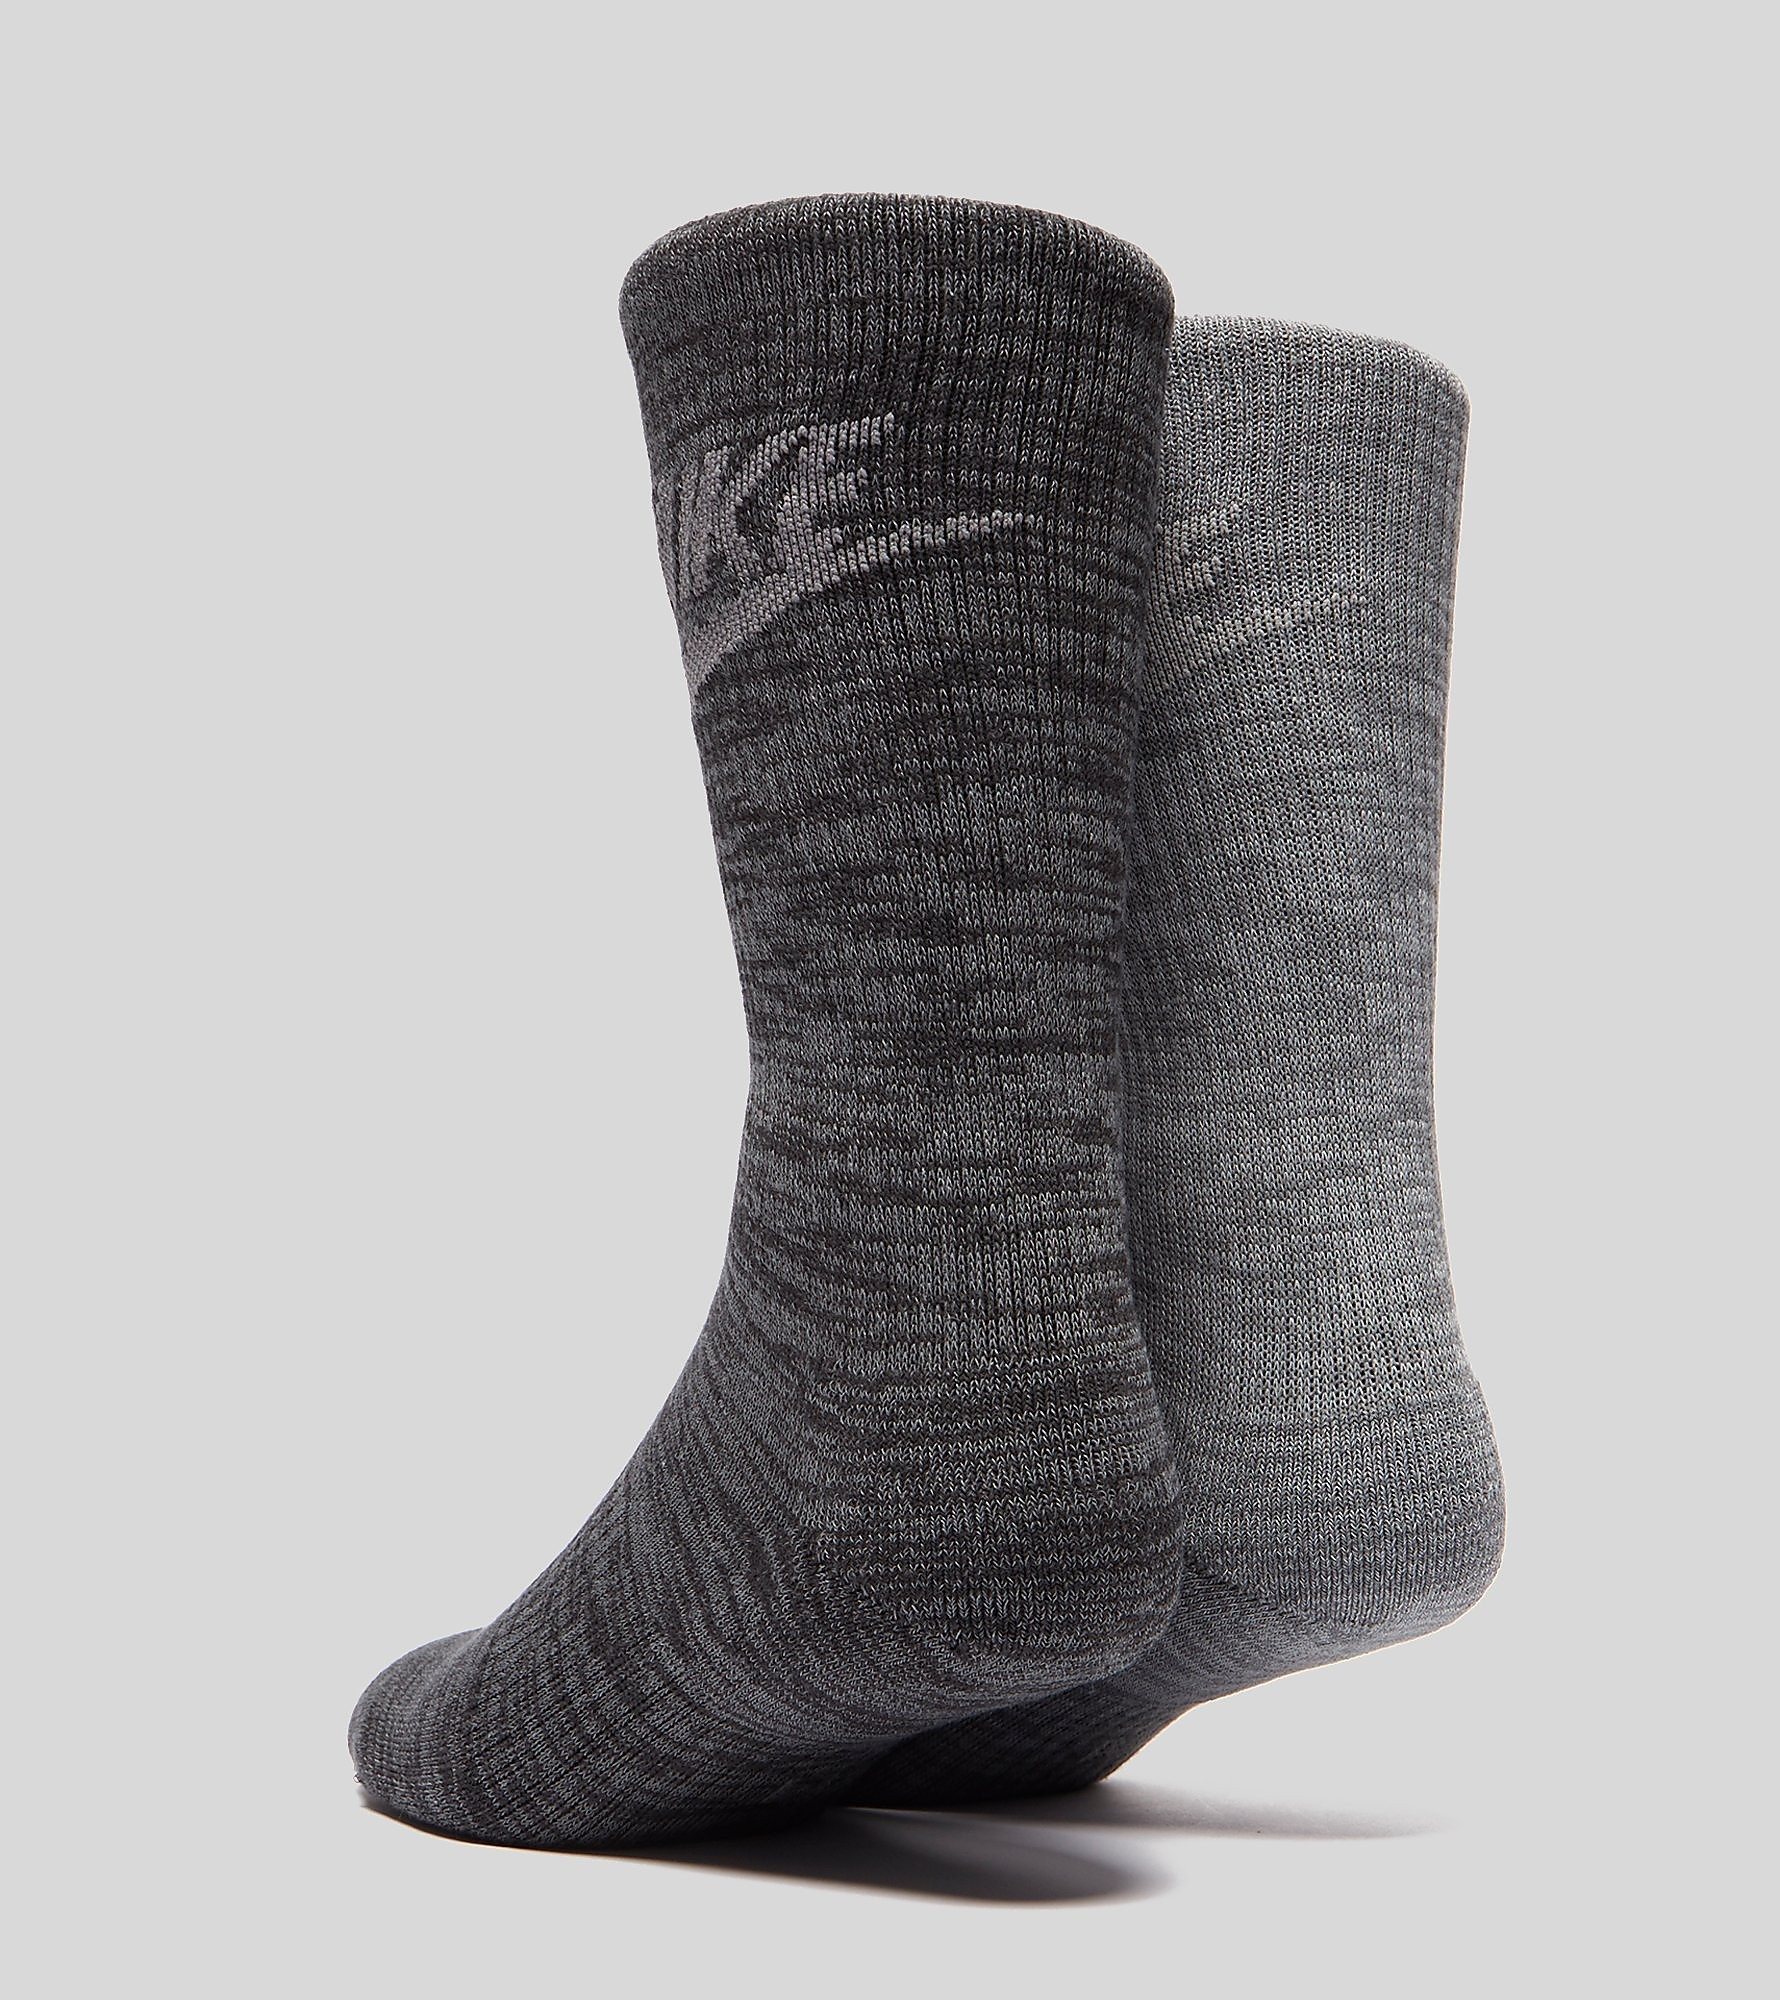 Nike Advance Crew Socks Two Pack